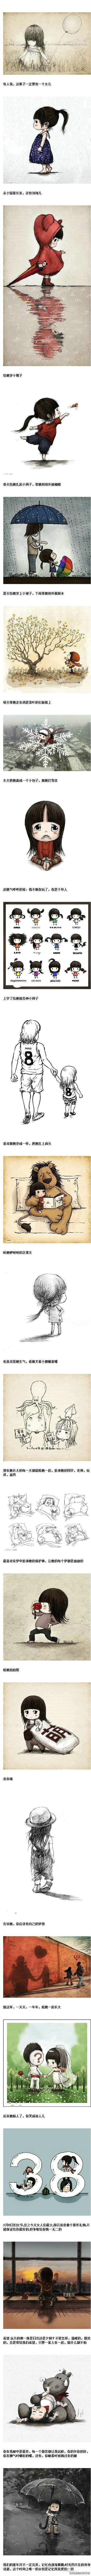 【看完心都化了,她爸爸给她画的】Wish I knew the translations but these look like Asian Precious Moments